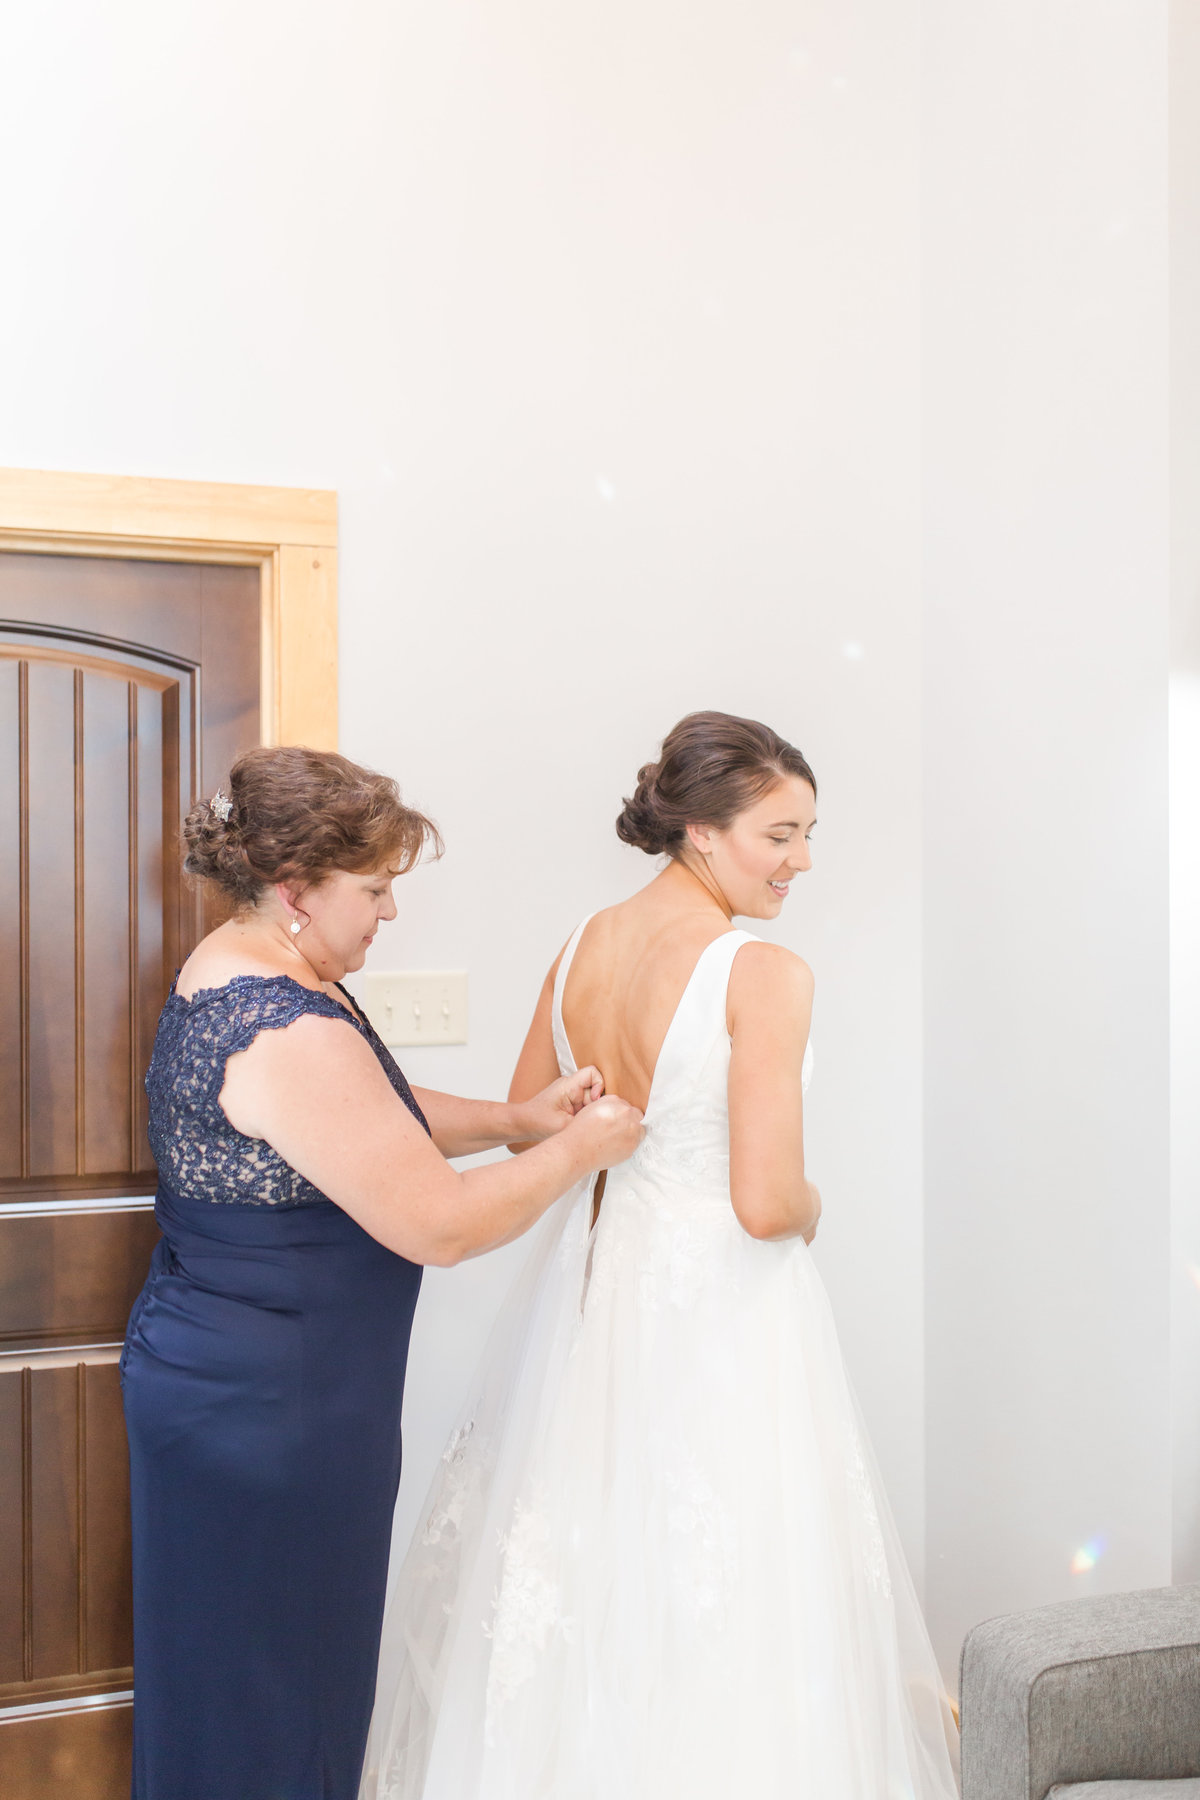 HYP_Kristina_and_Benedikt_Wedding_0017